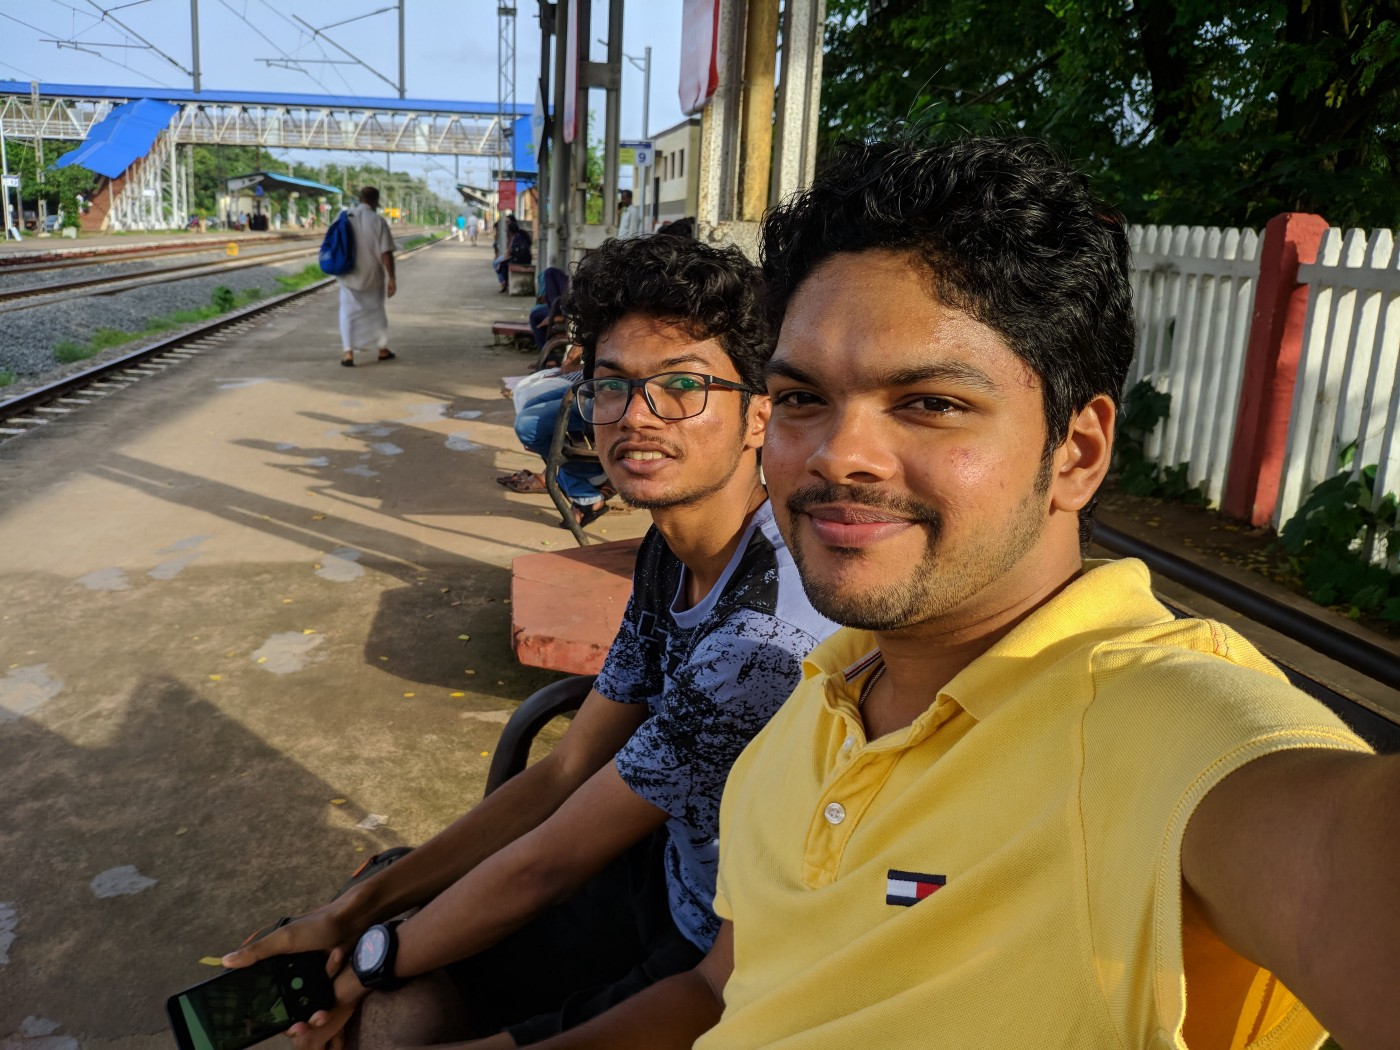 Me(left) and Edwin(right) waiting for the Train at Nileshwar